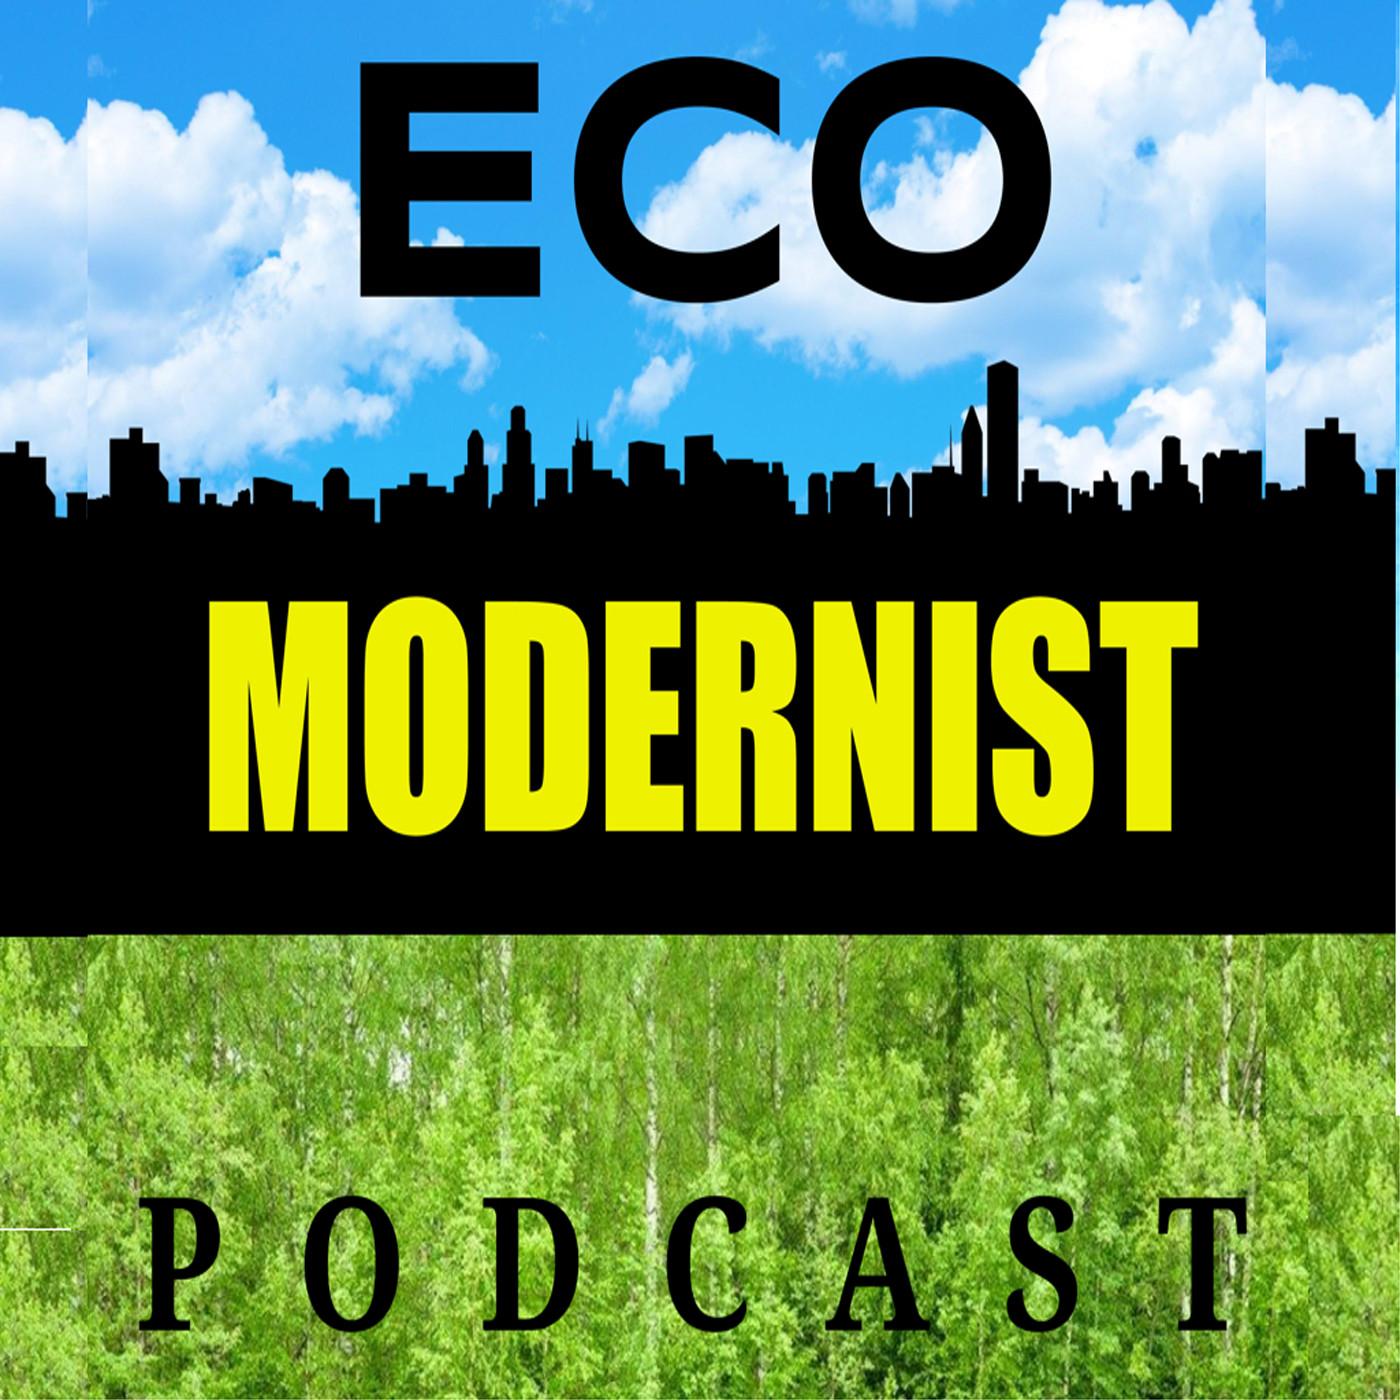 eco_modernist_podcast.jpg